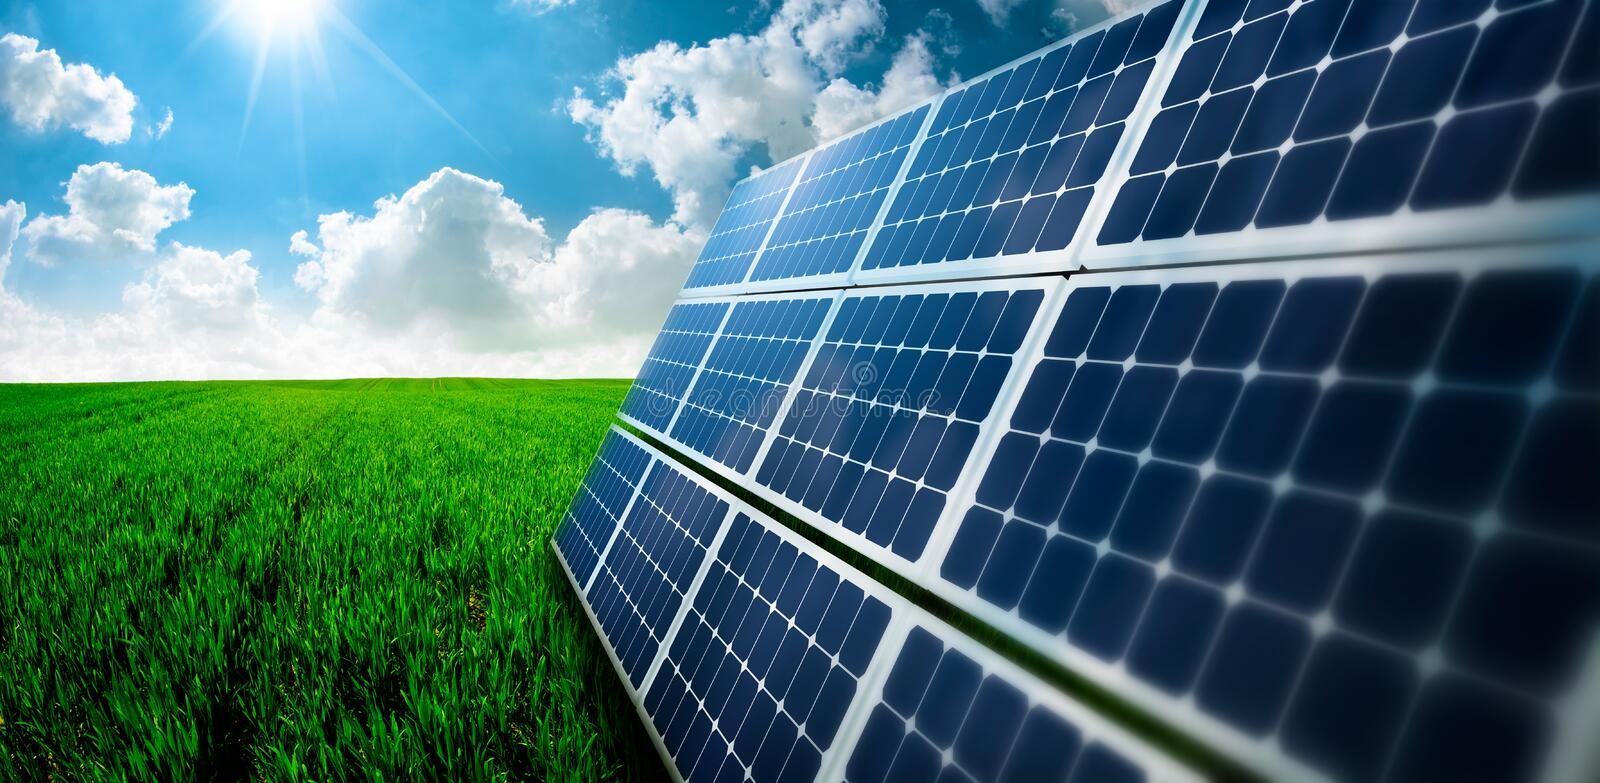 Photovoltaic ecological modules in grass royalty free stock image